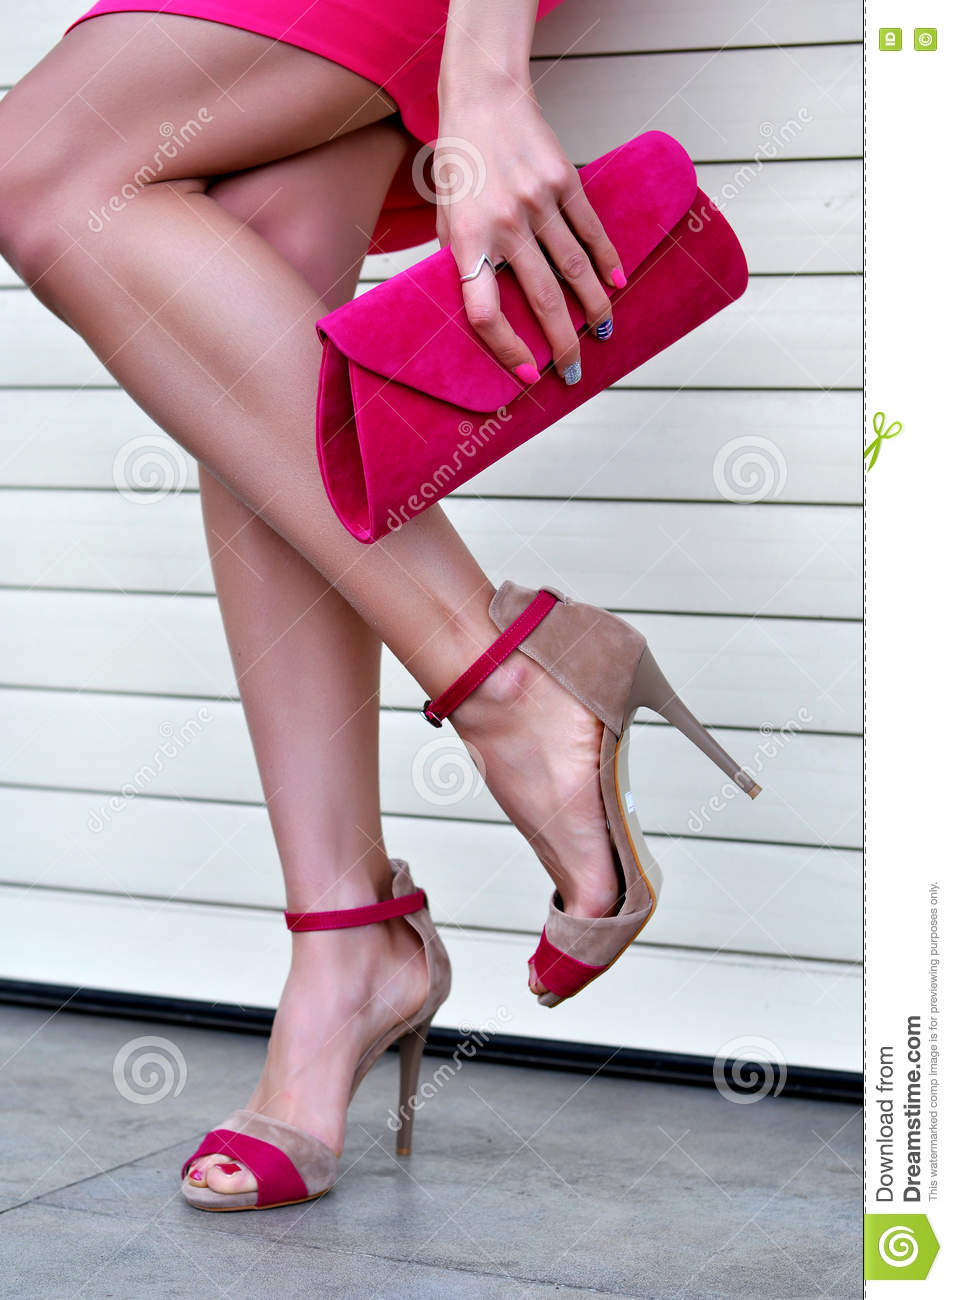 woman's legs with a fashionable pink high heels and purse stock